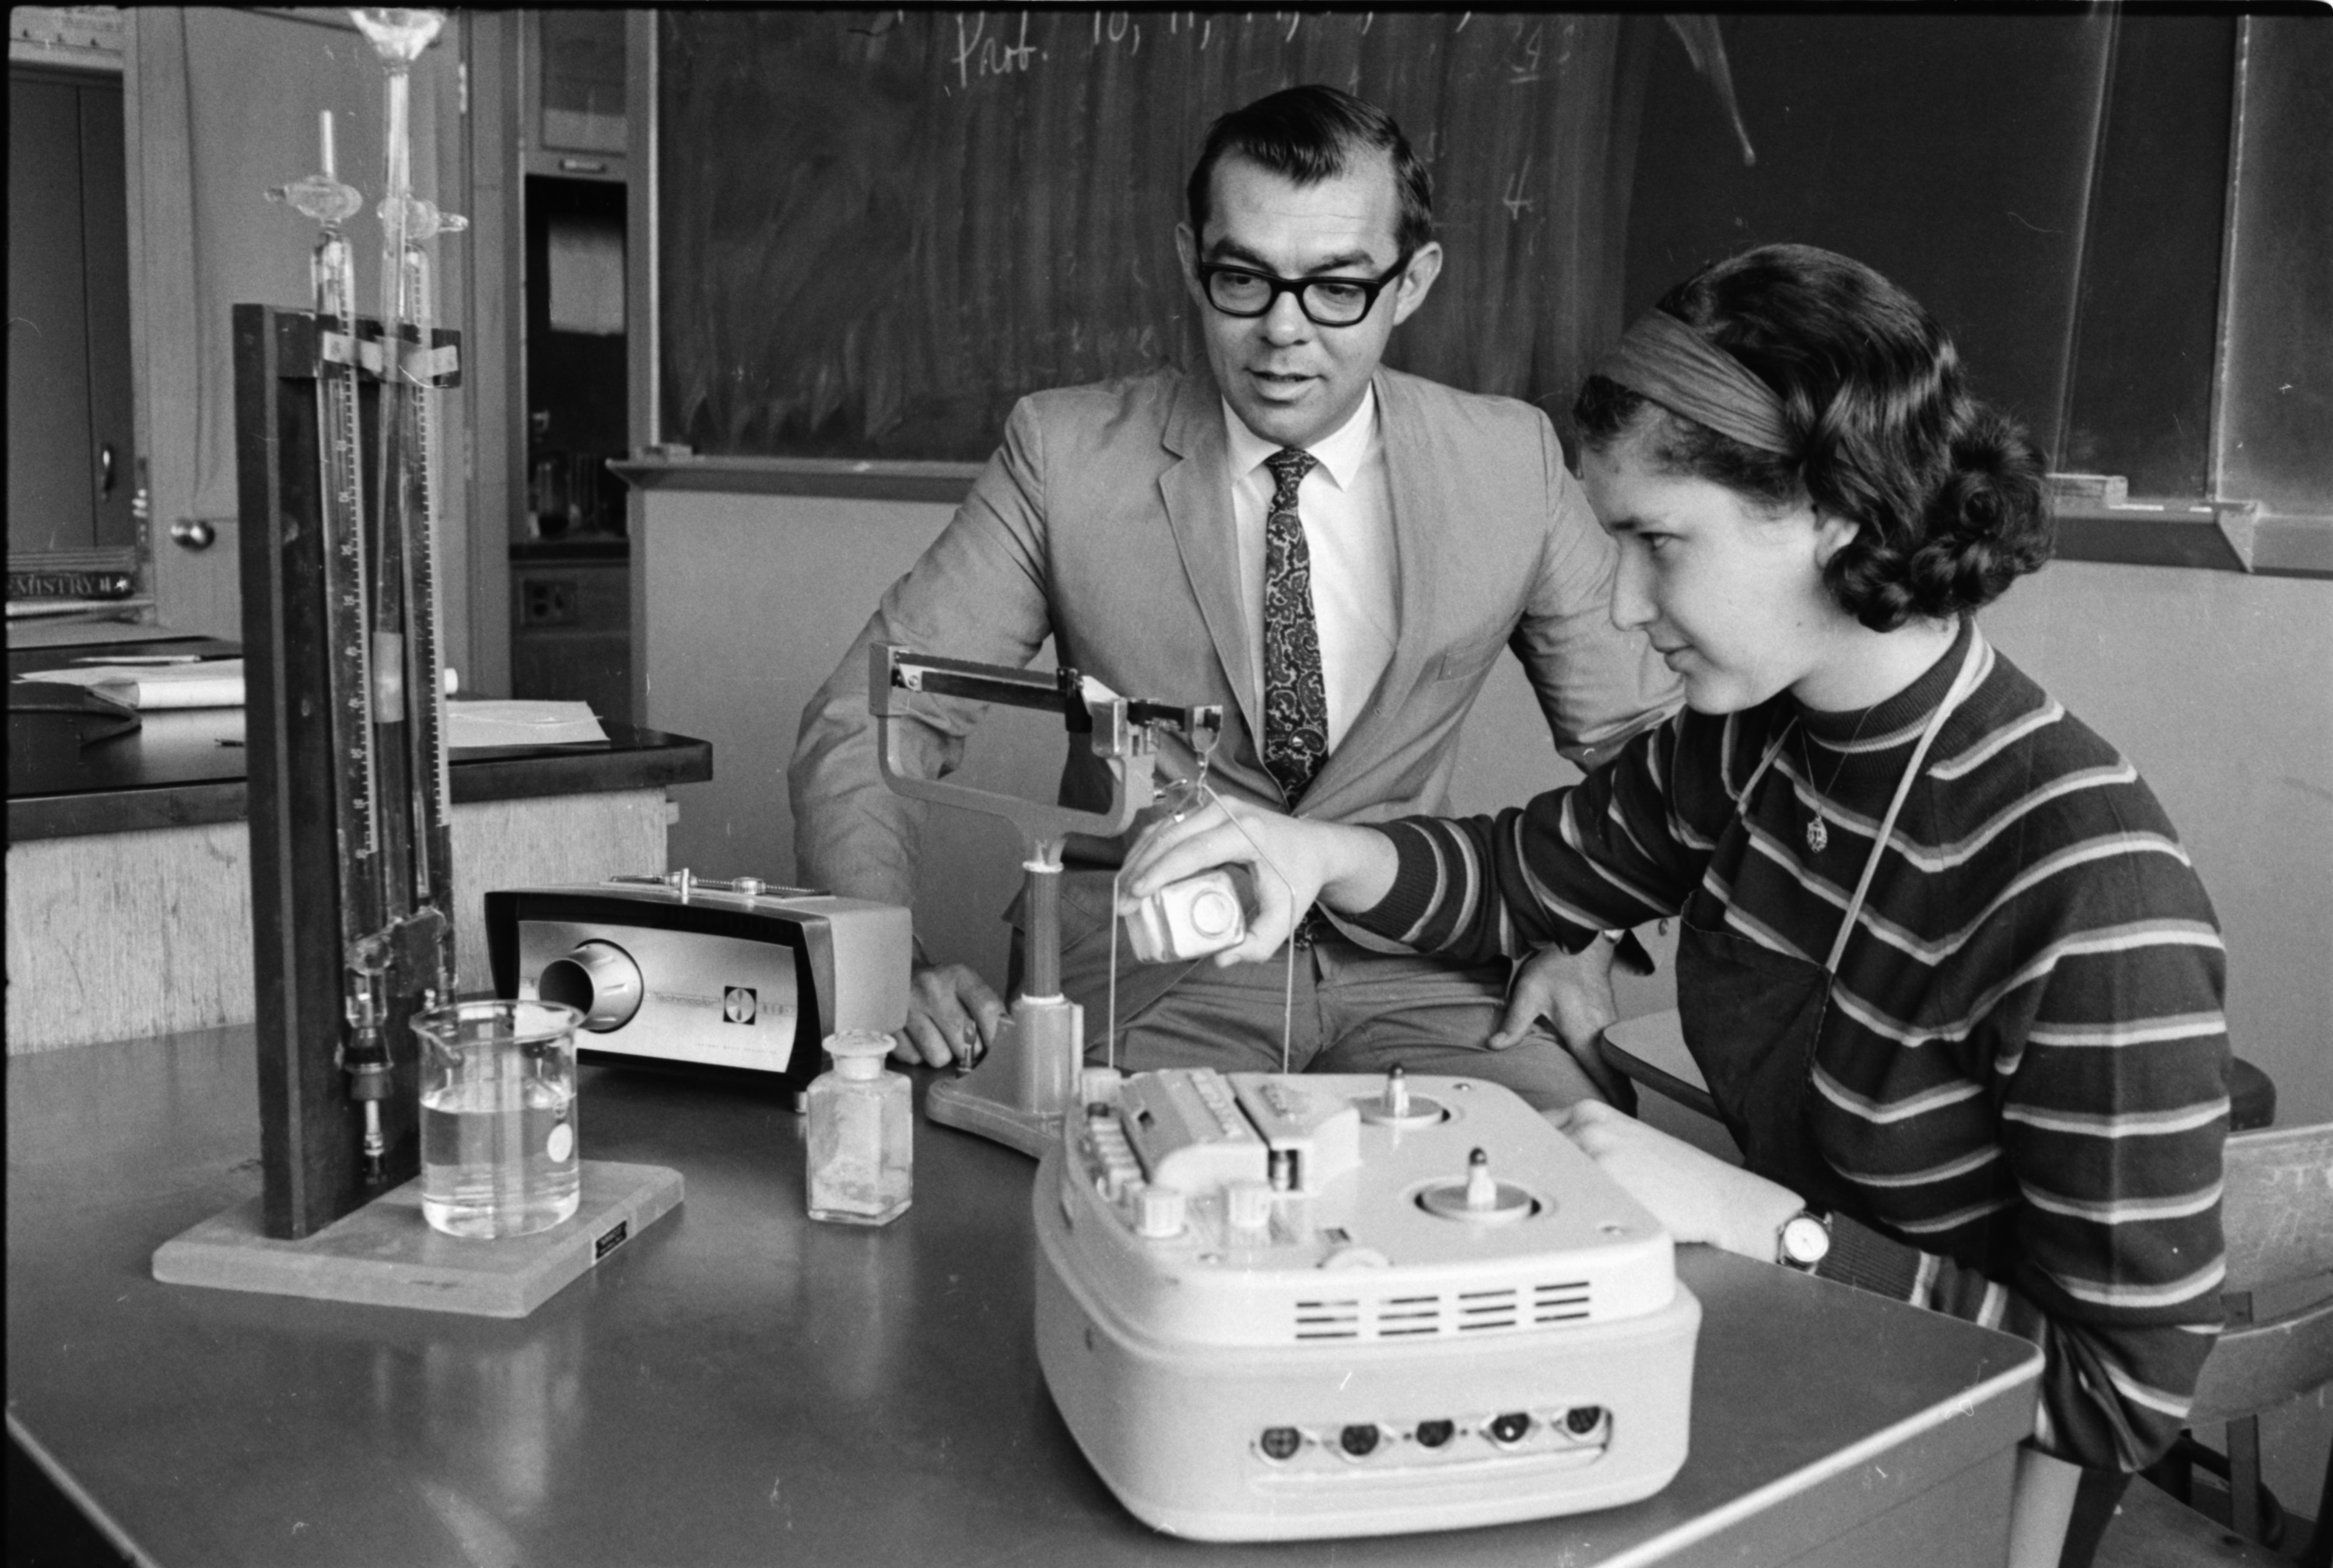 New Equipment Tested in Pioneer High School Science Lab, September, 1968 image